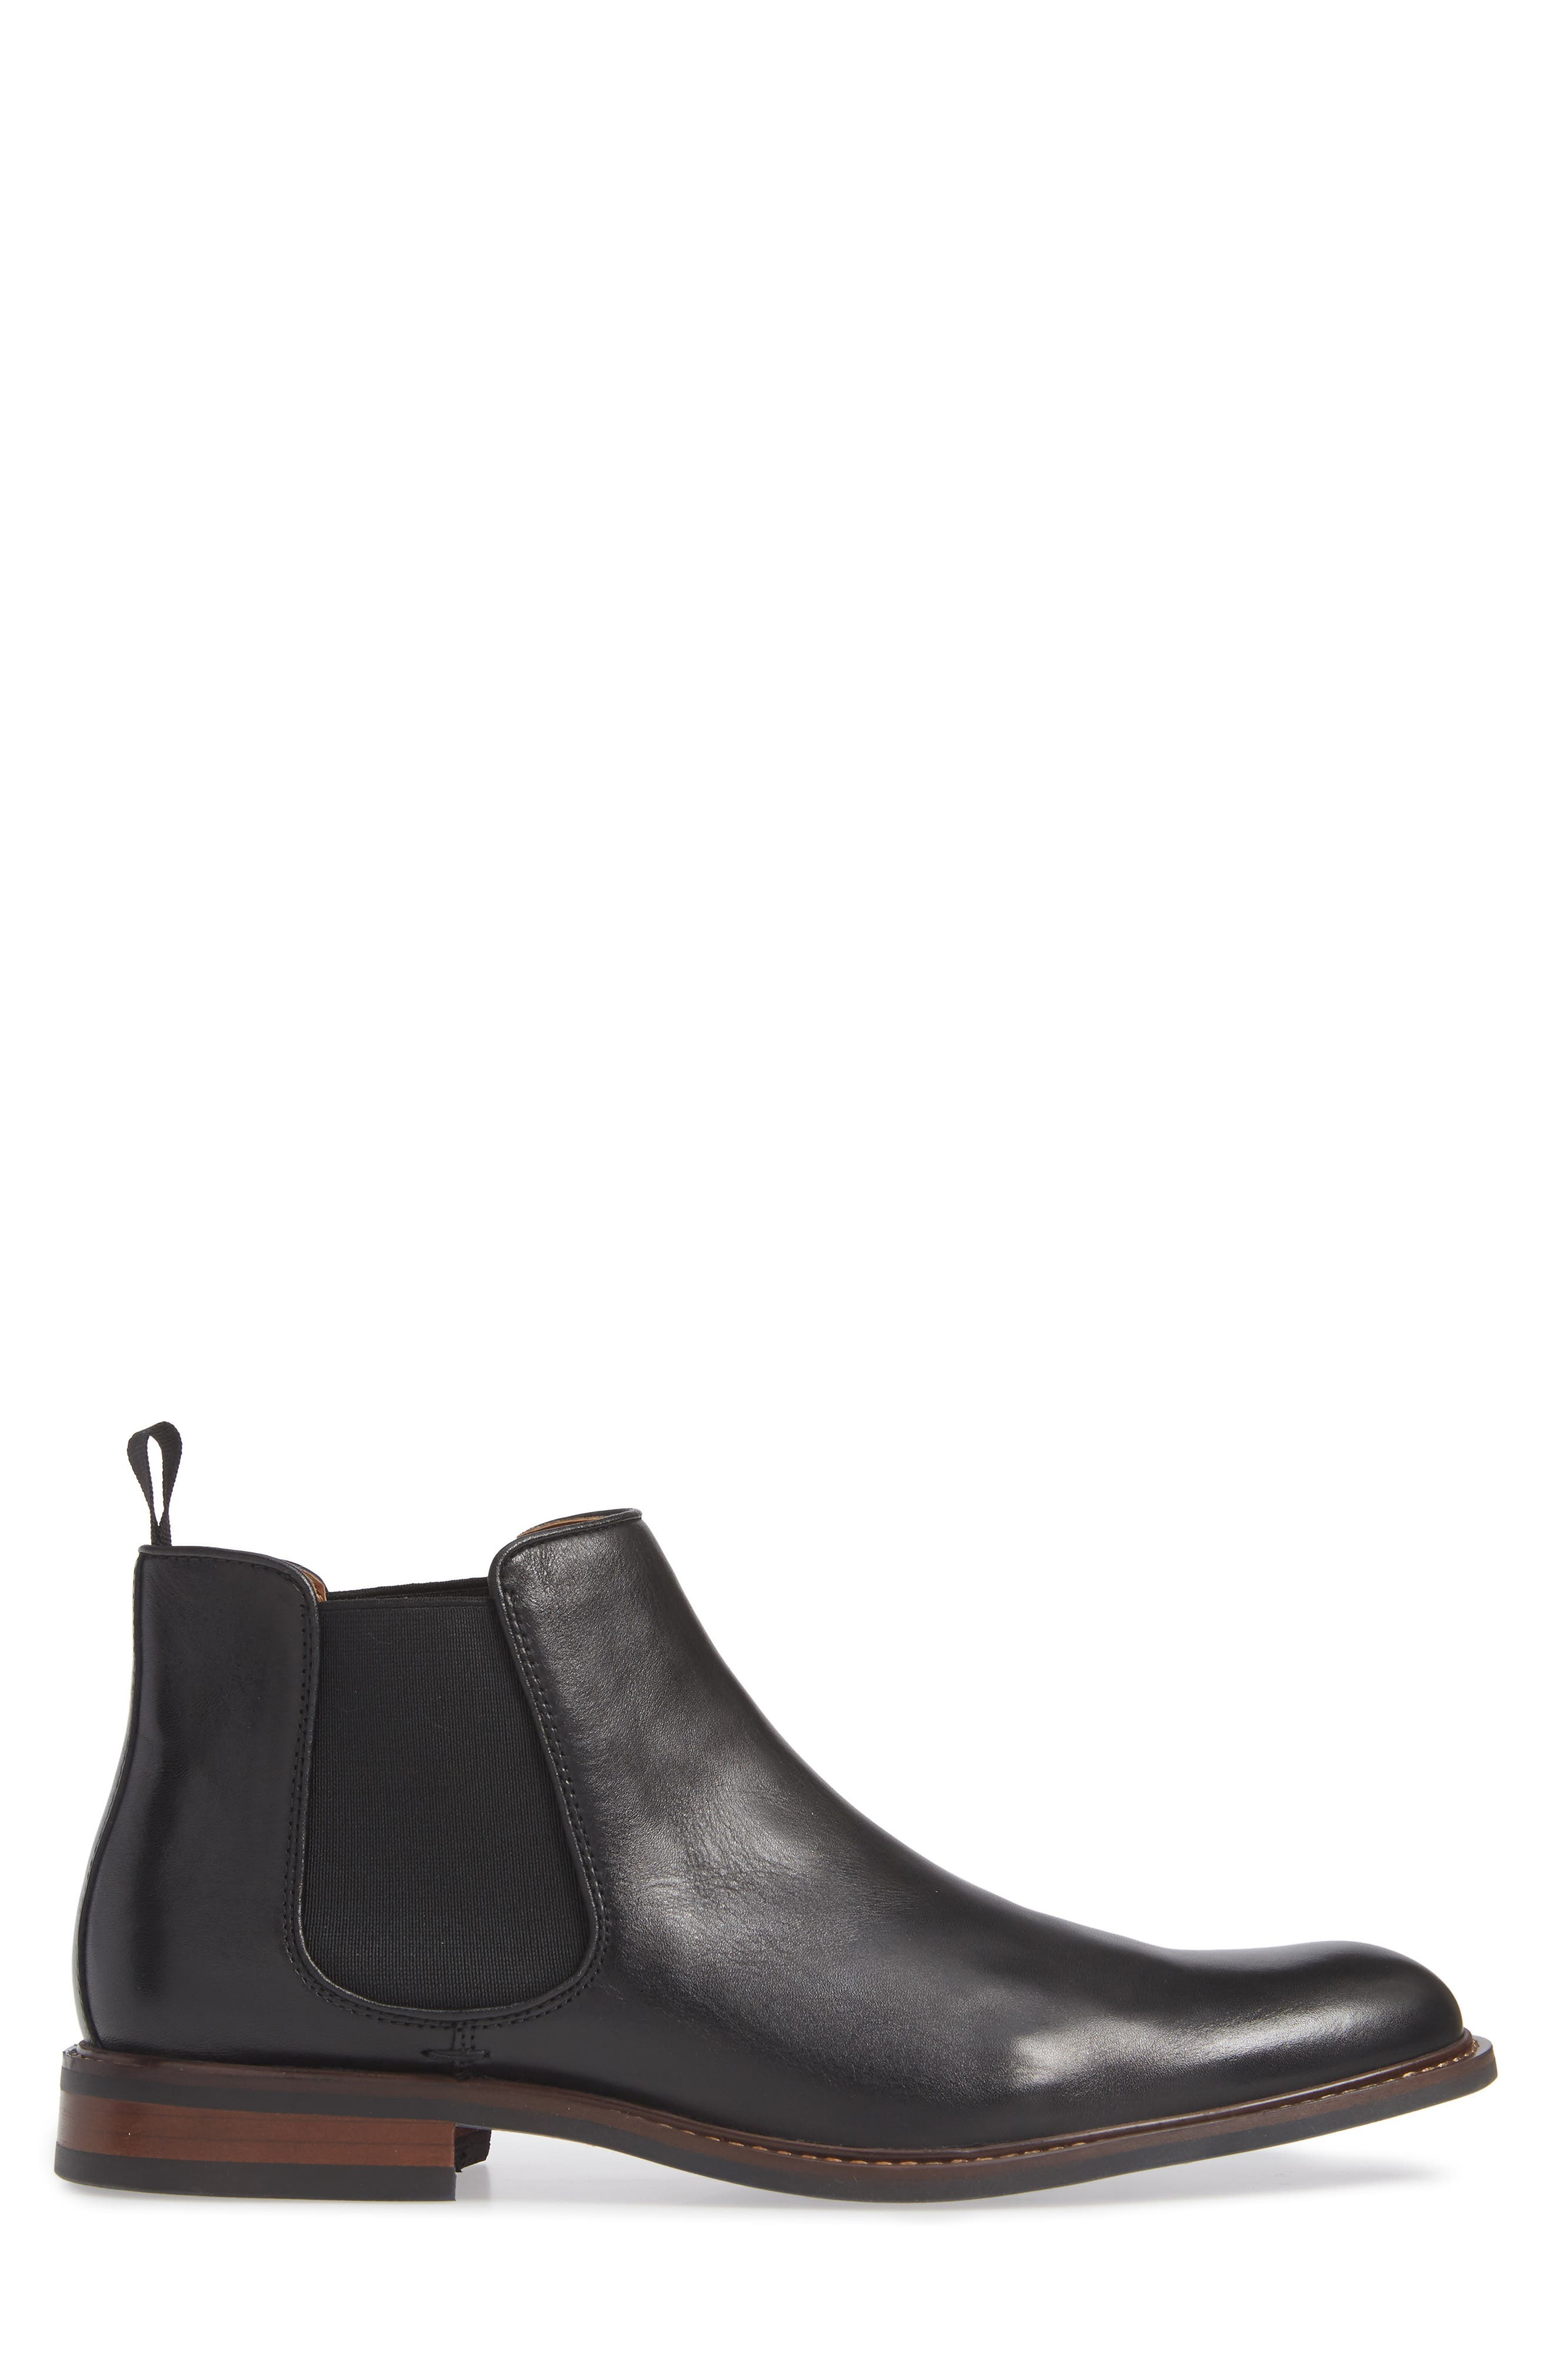 NORDSTROM MEN'S SHOP, David Chelsea Boot, Alternate thumbnail 3, color, BLACK LEATHER